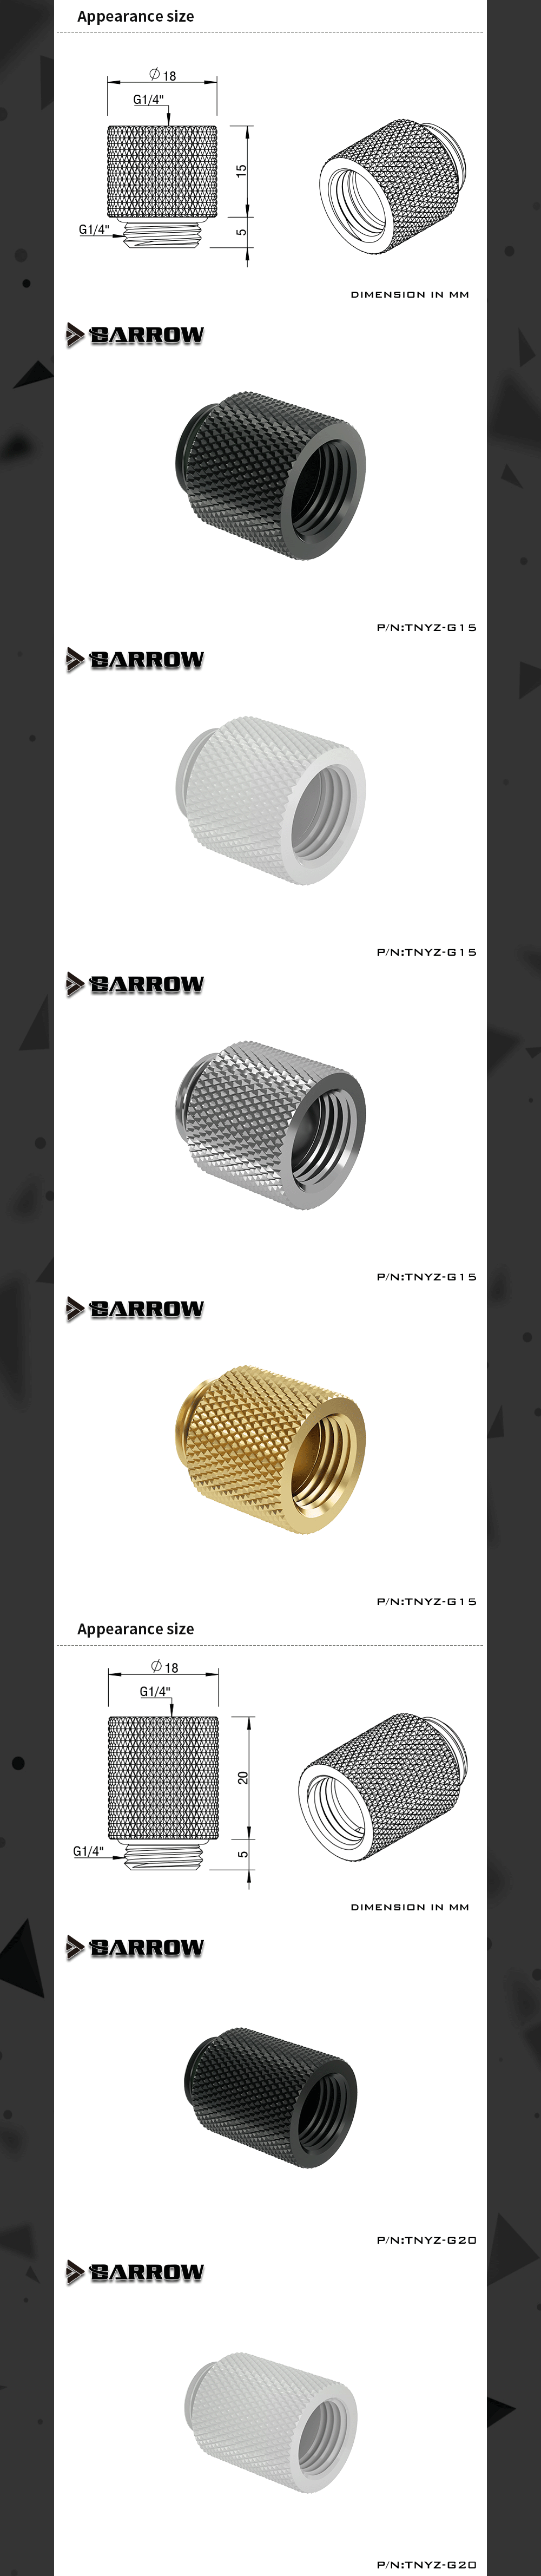 Barrow TNYZ Series Male To Female Extender Fitting , 7.5 10 15 20 30 40 mm Length G1/4 M2F Adapter